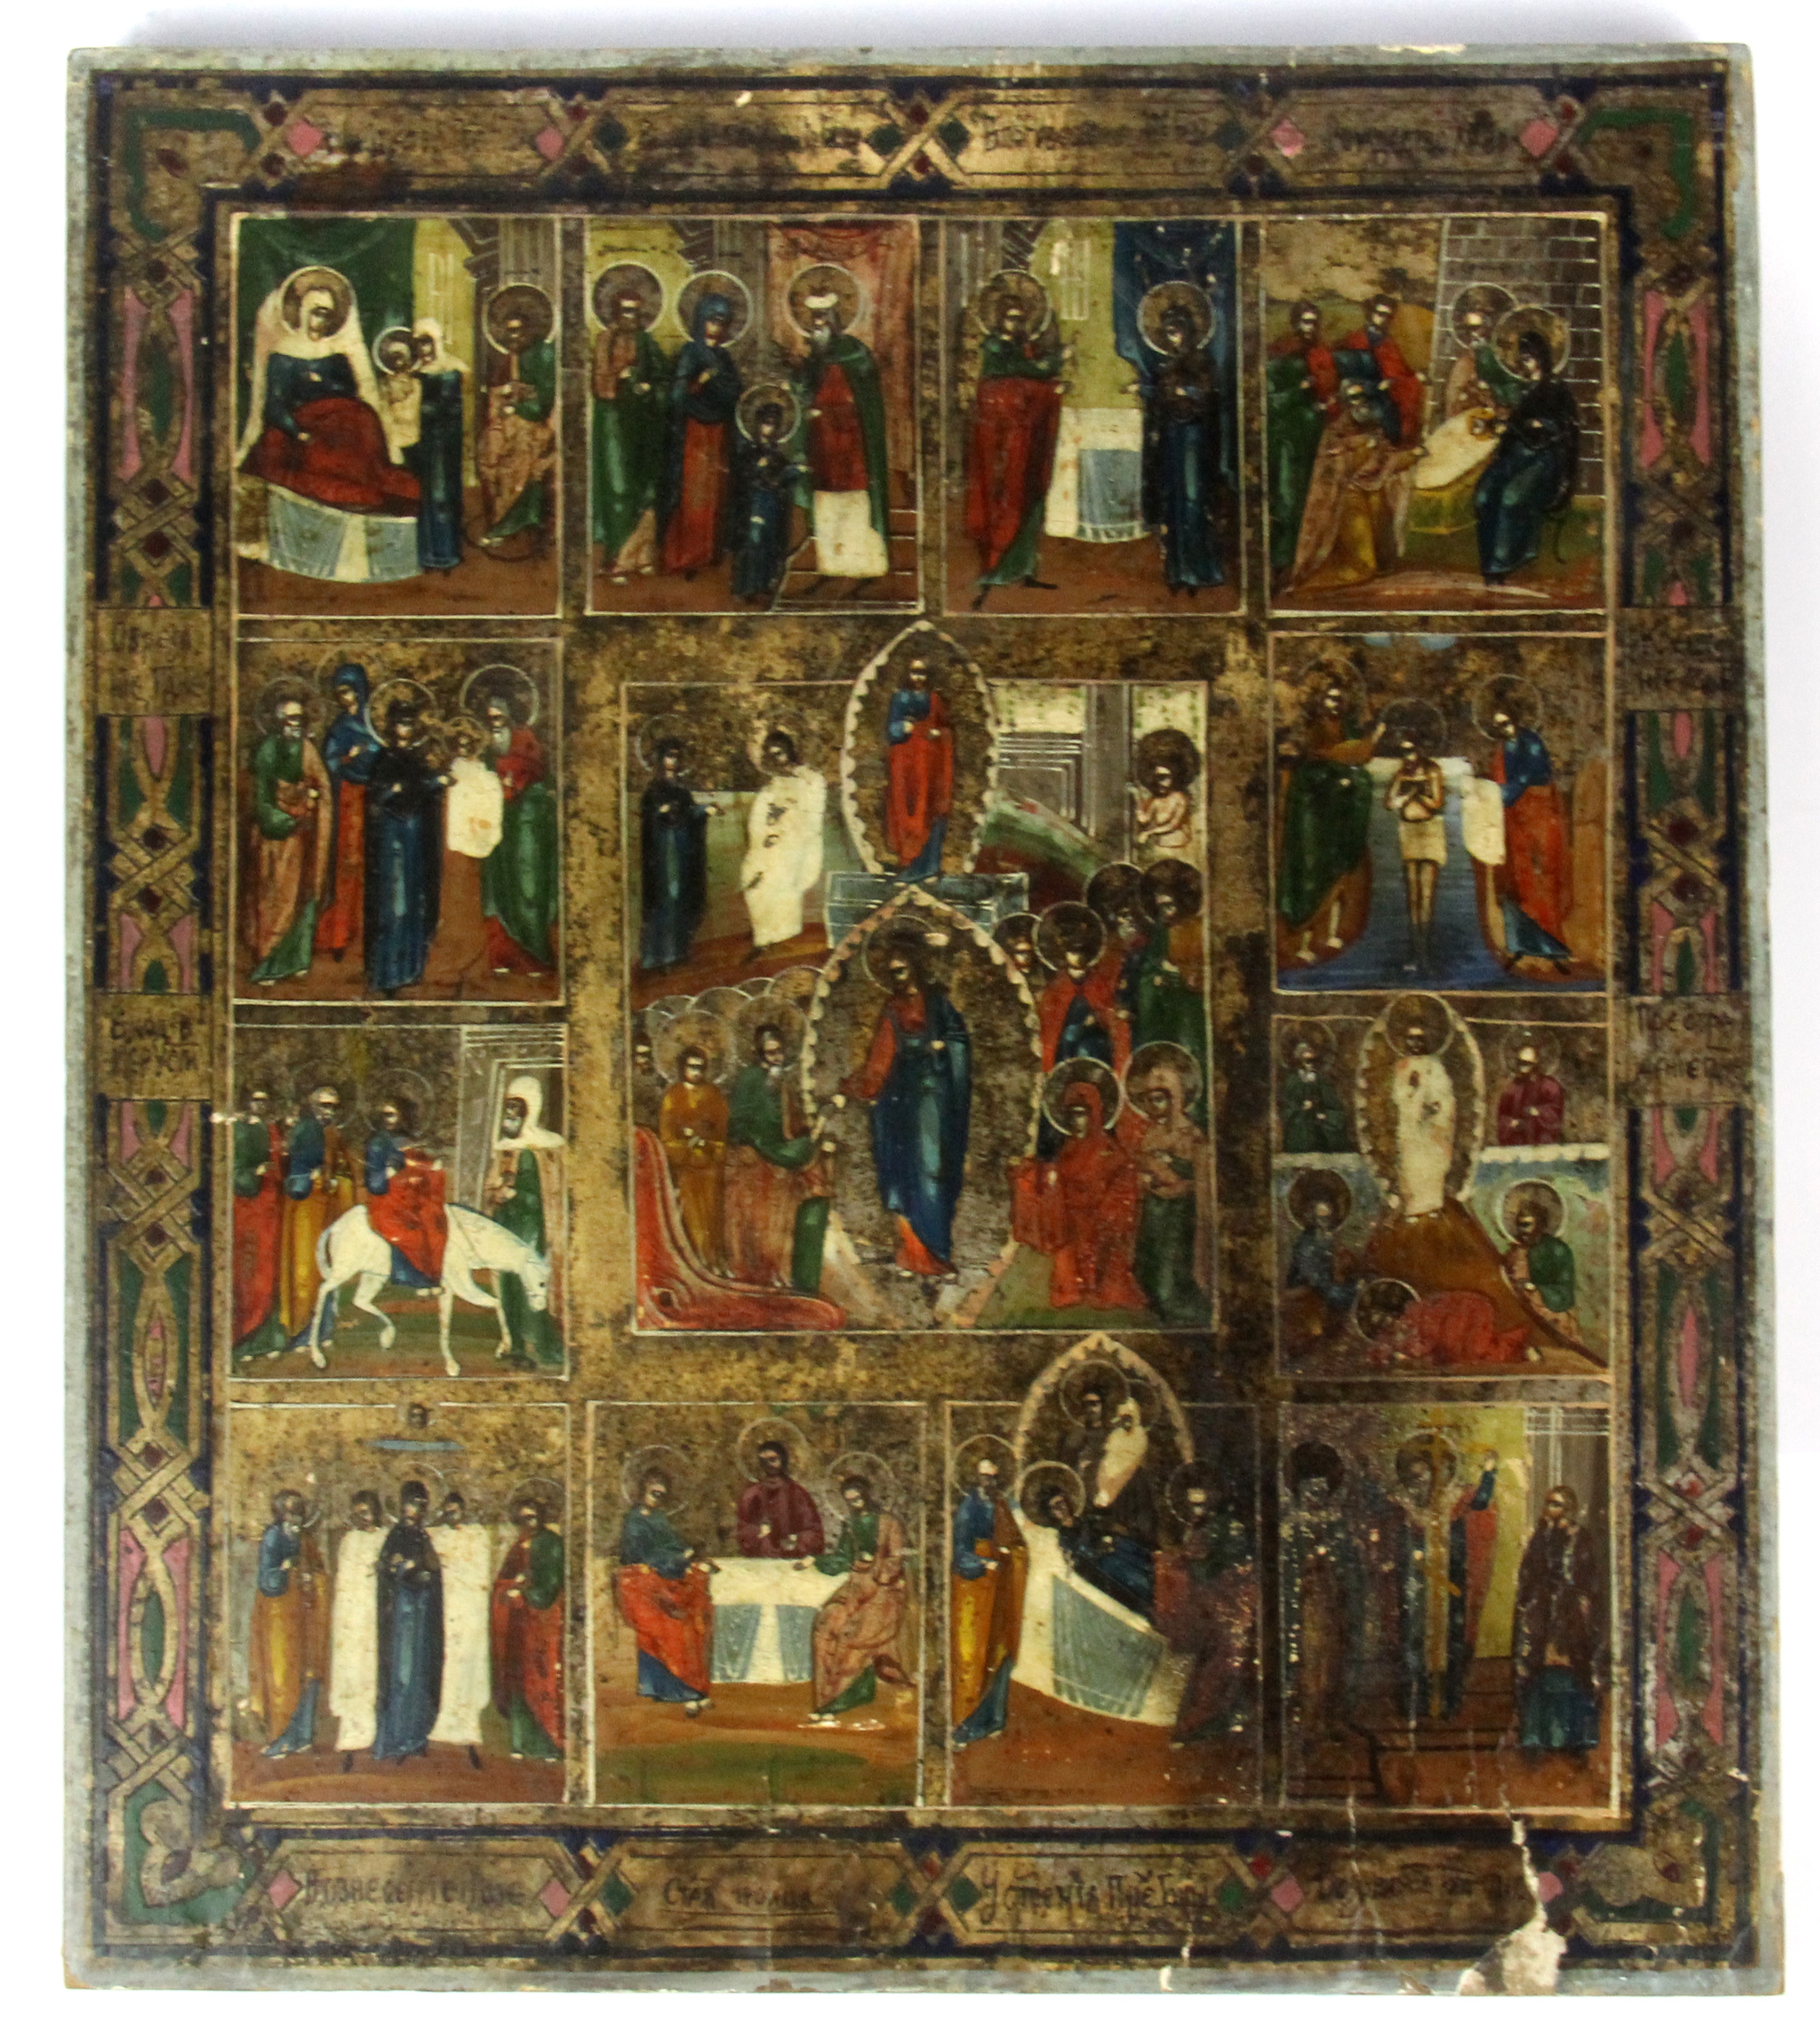 Lot 188 - A hand painted Russian icon on wooden panel, size 30 x 35cm.